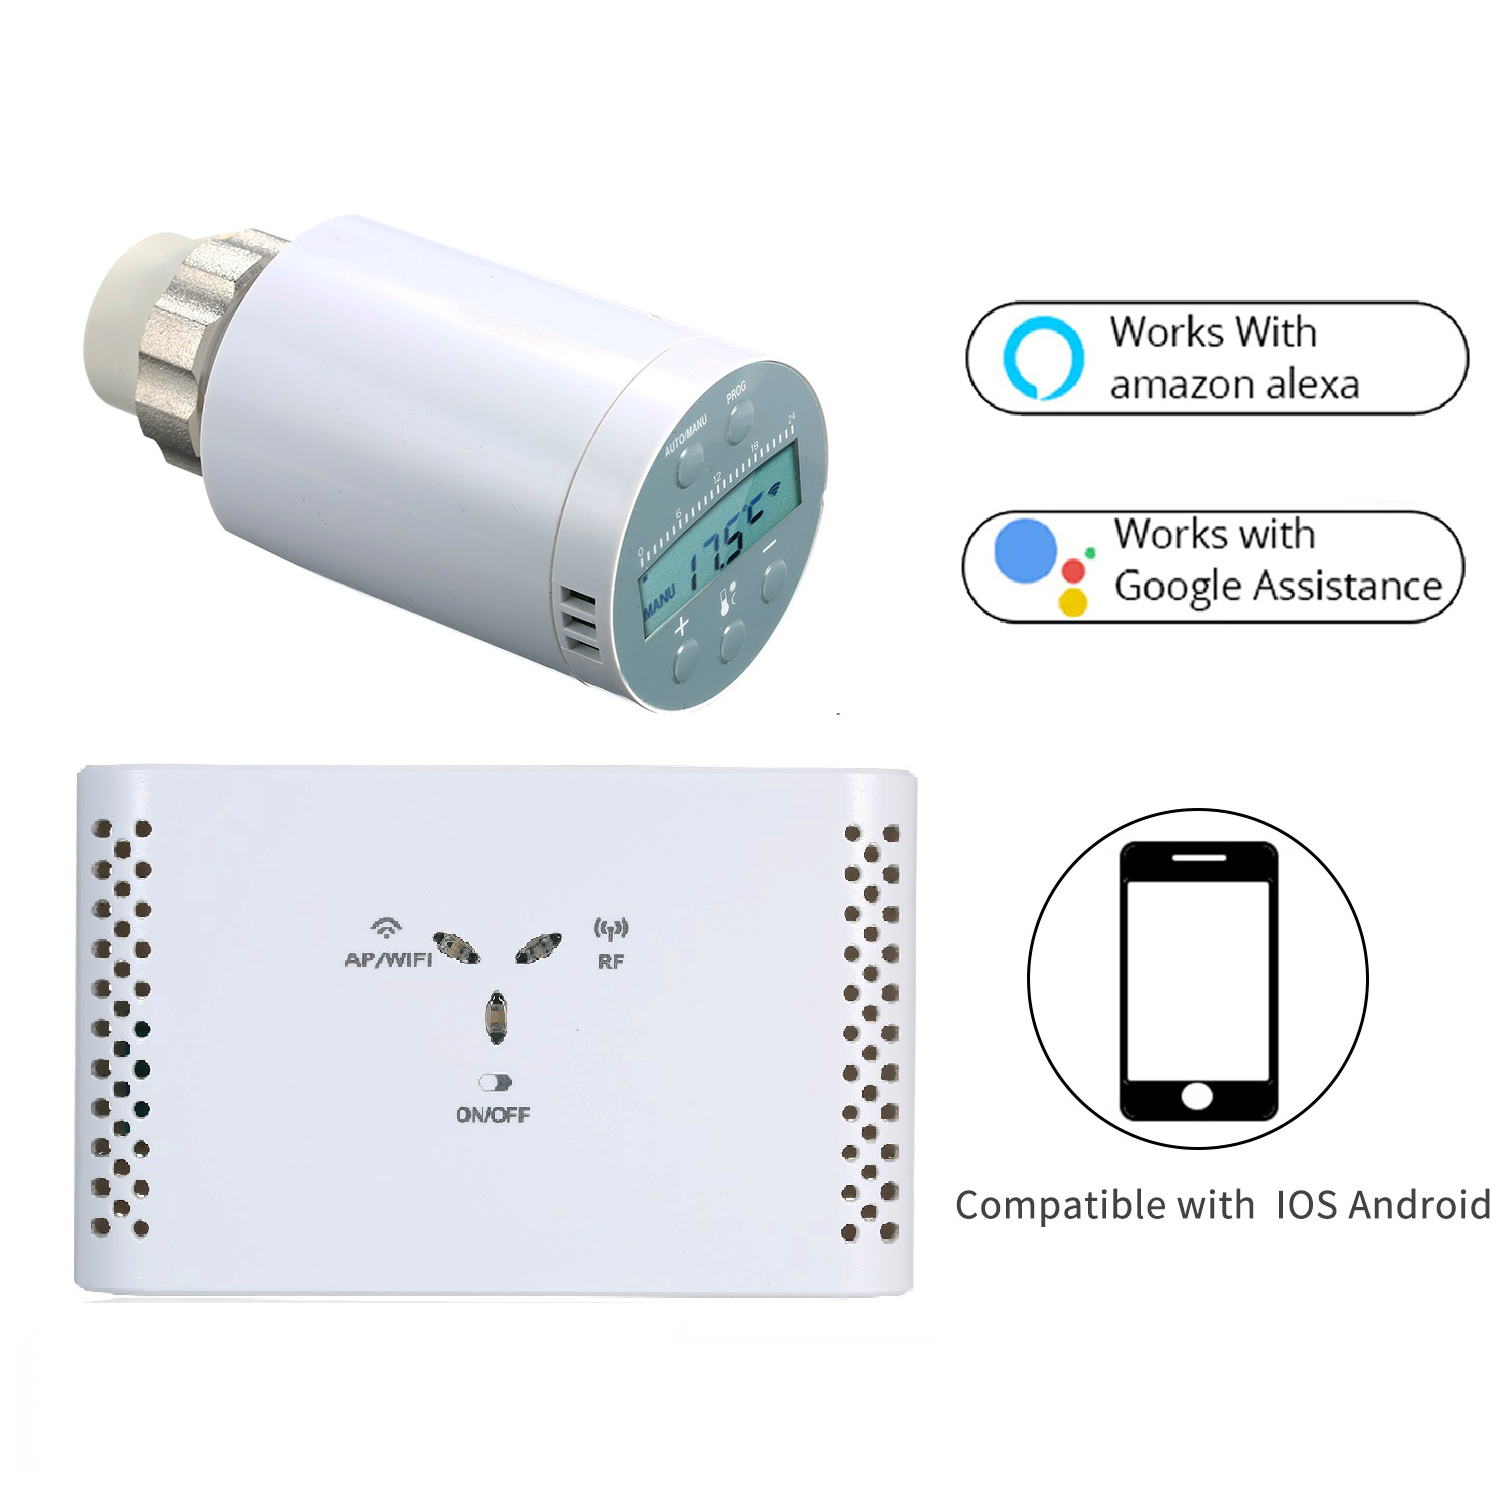 SEA801- WIFI Programmable Thermostat Temperature Controller Receiver And TRV Thermostatic Radiator Valve For Heating Gas Boiler